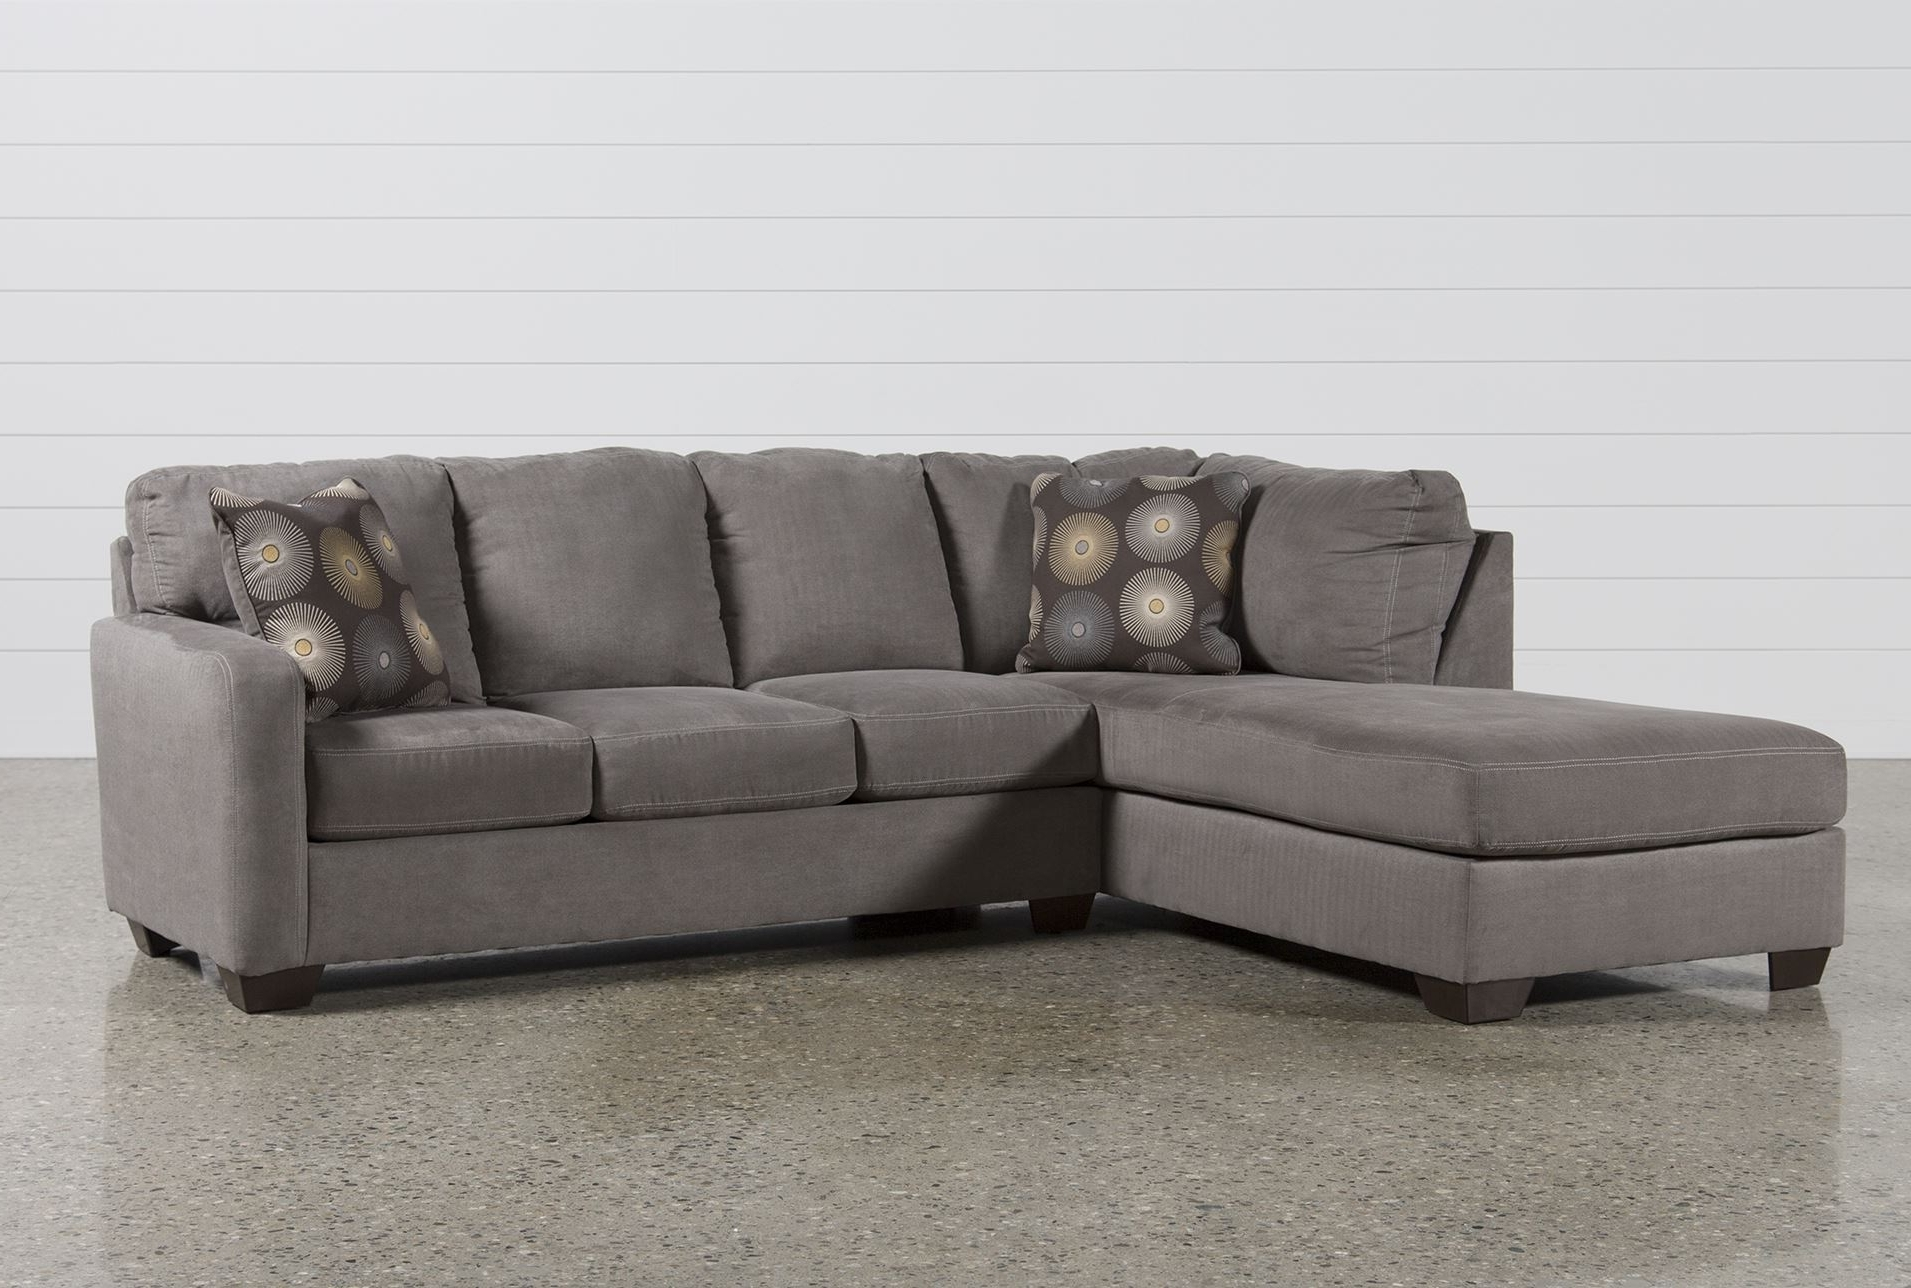 Recent Furniture: Microfiber Chaise Lounge For Comfortable Sofa Design With Gray Chaise Sofas (View 8 of 15)